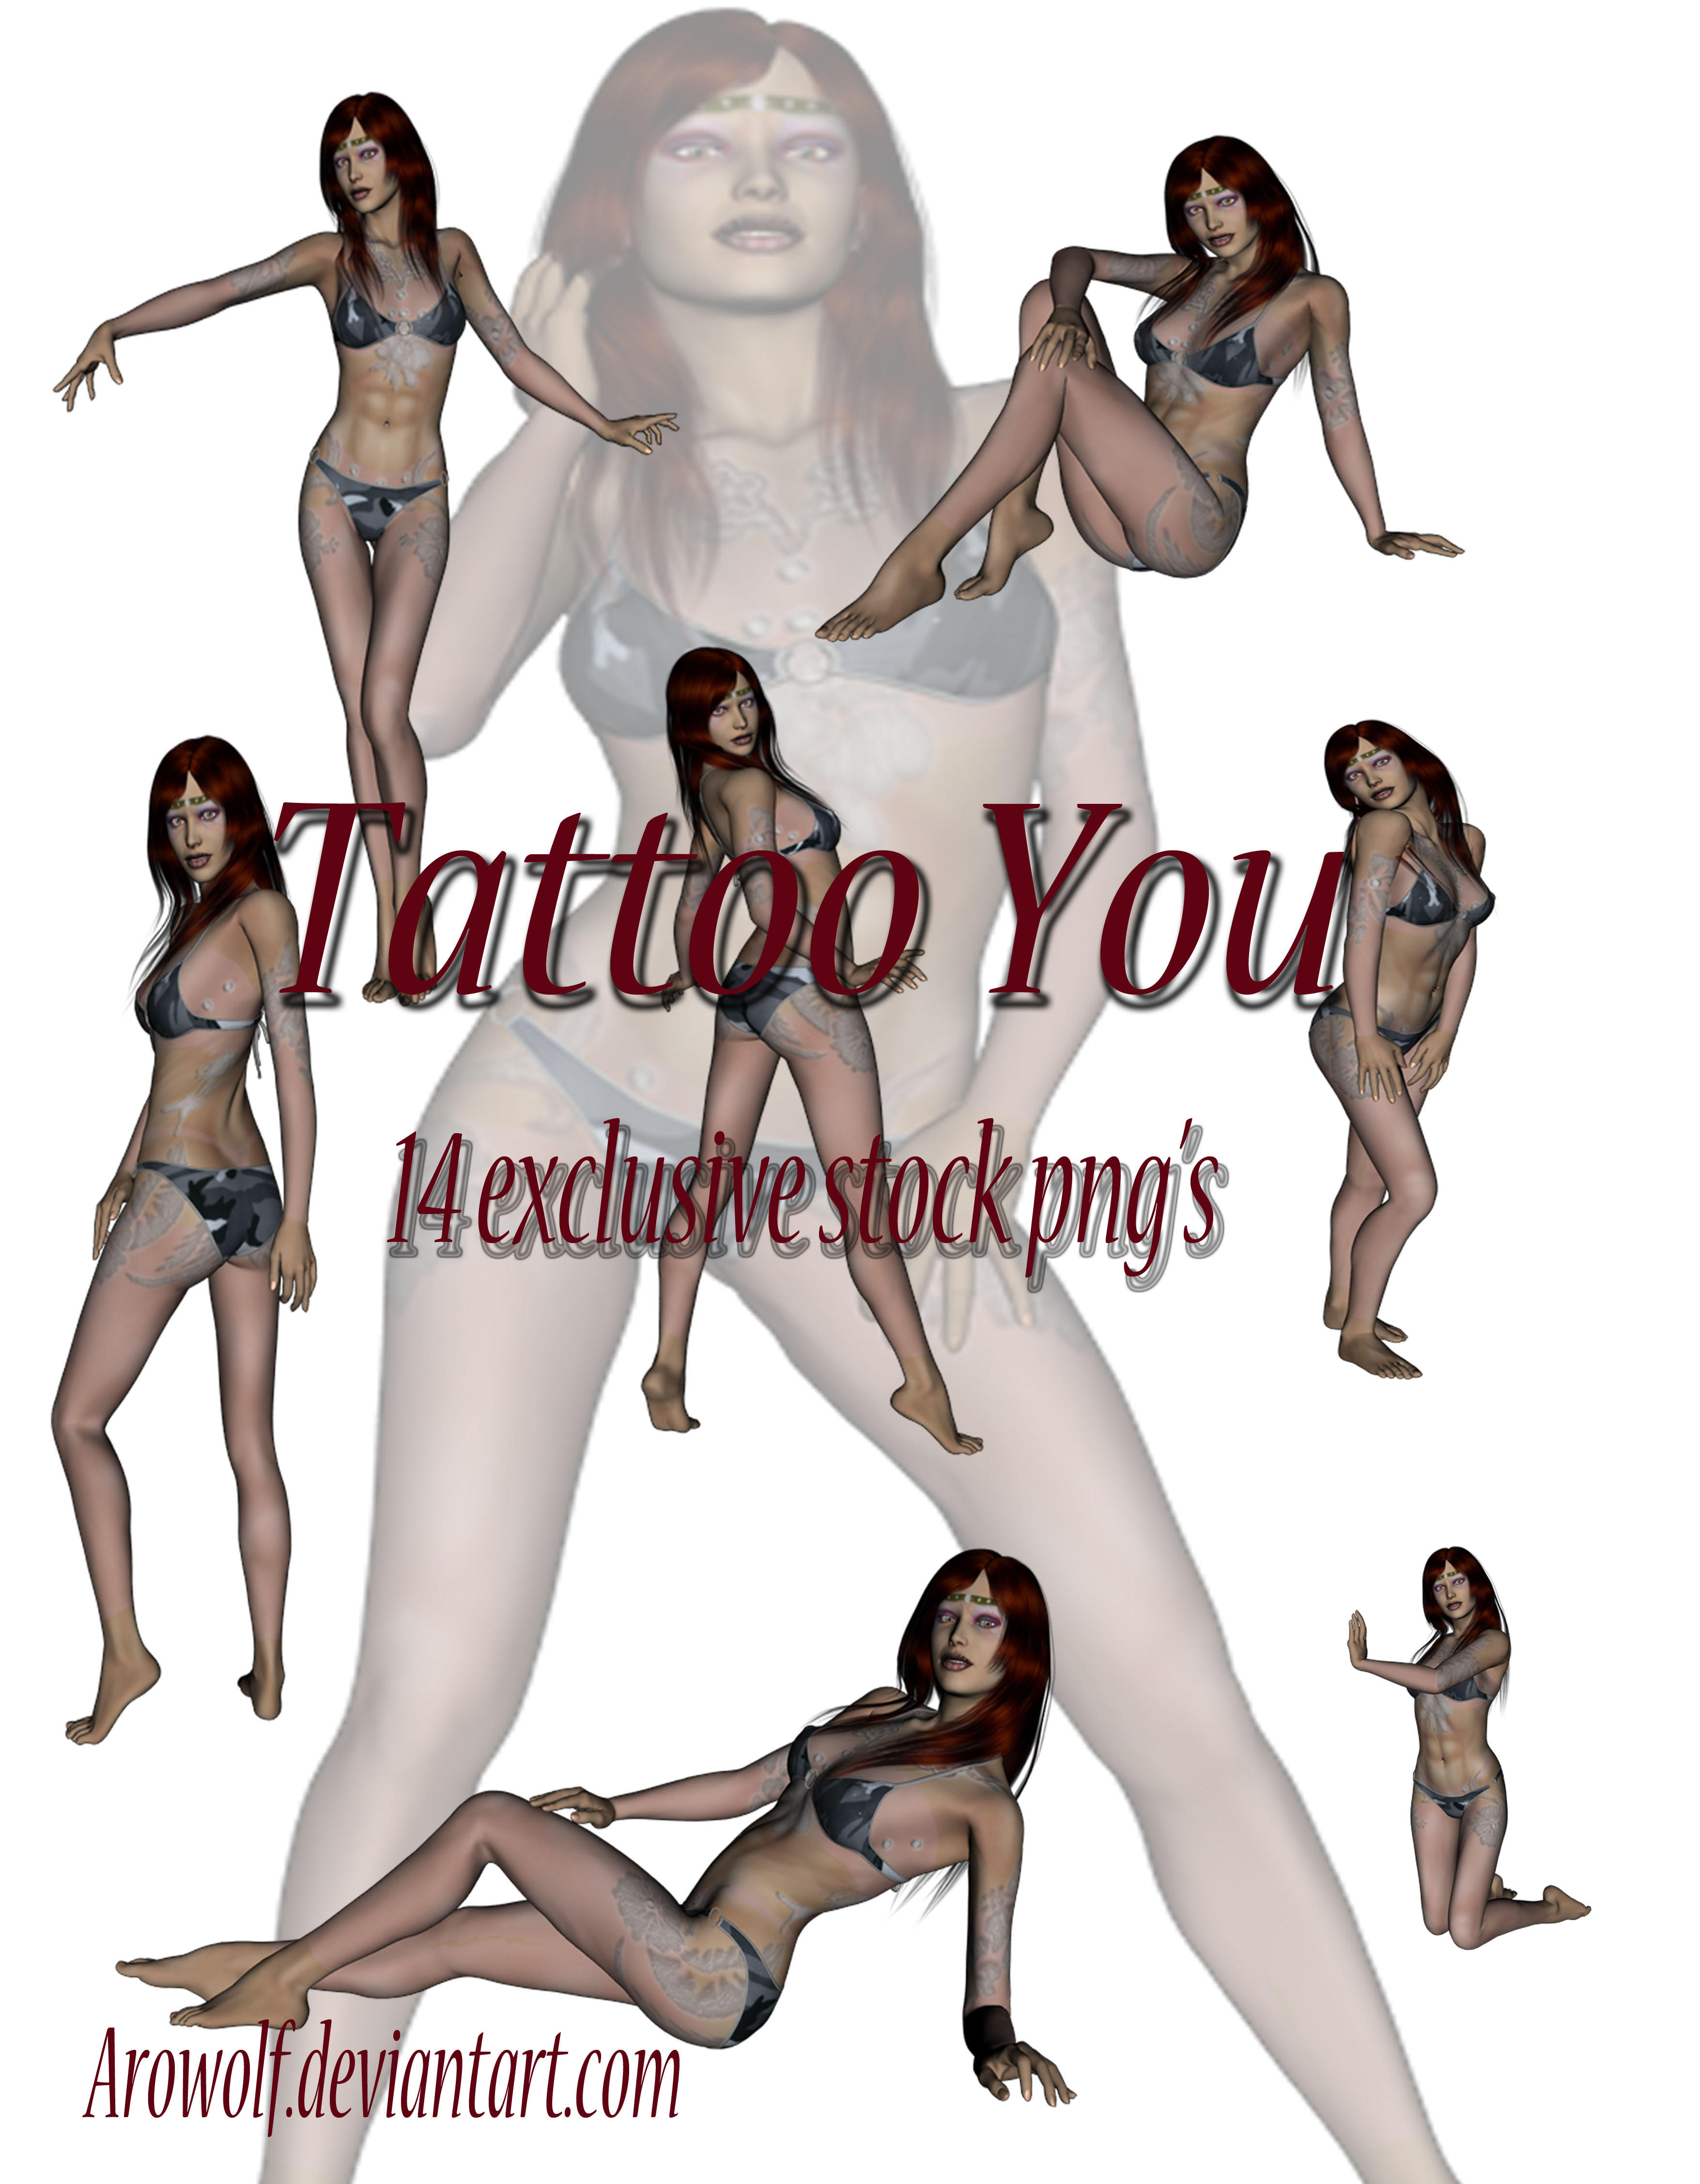 Tattoo You by brutalbich